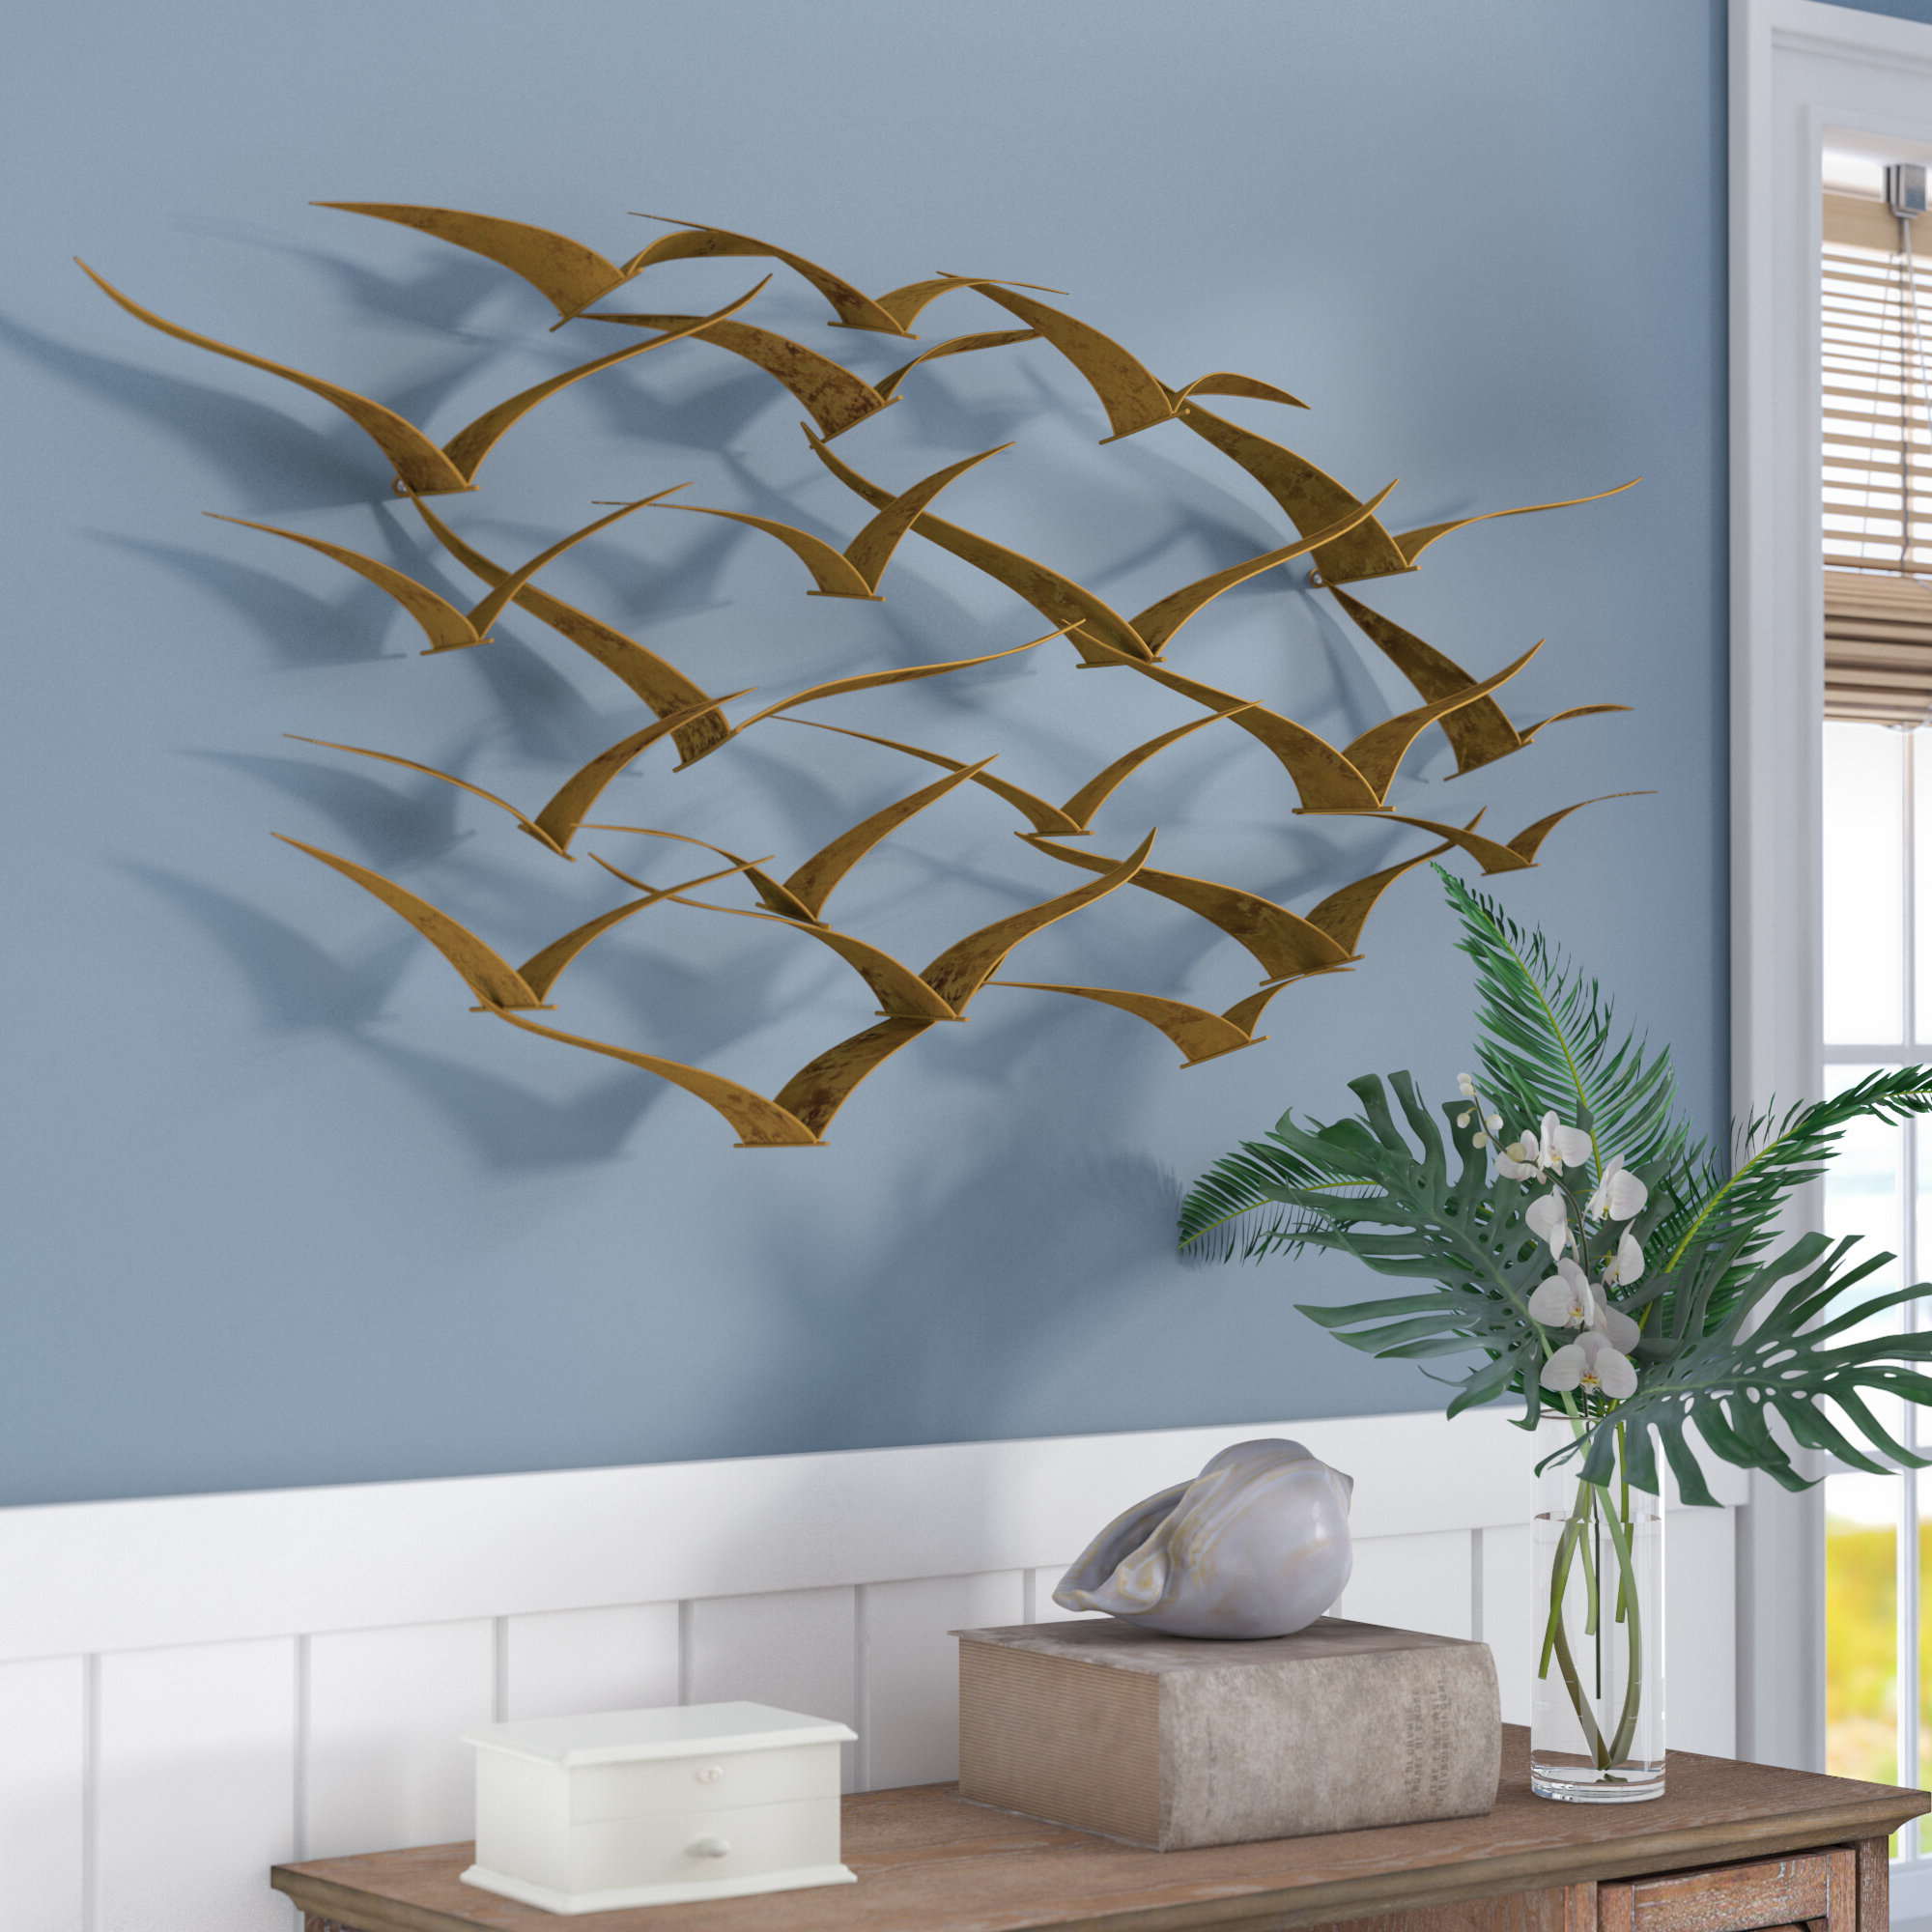 Metal Birds Wall Décor By Beachcrest Home Pertaining To Trendy Beachcrest Home™ Wall Accents You'll Love In (View 9 of 20)